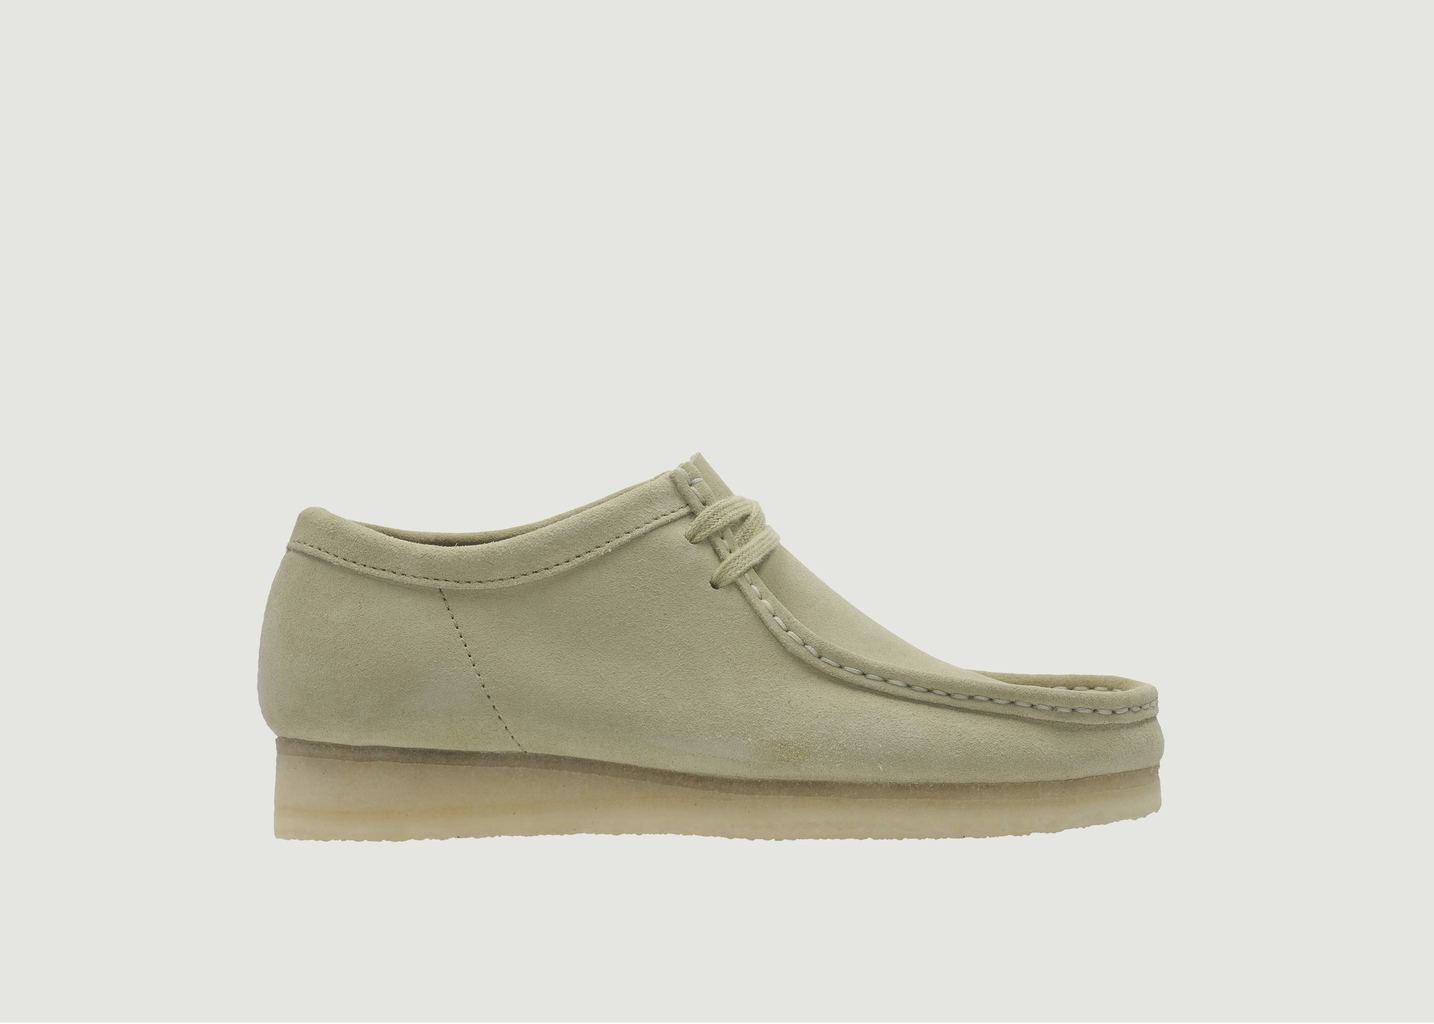 Wallabee loafers - Clarks Originals